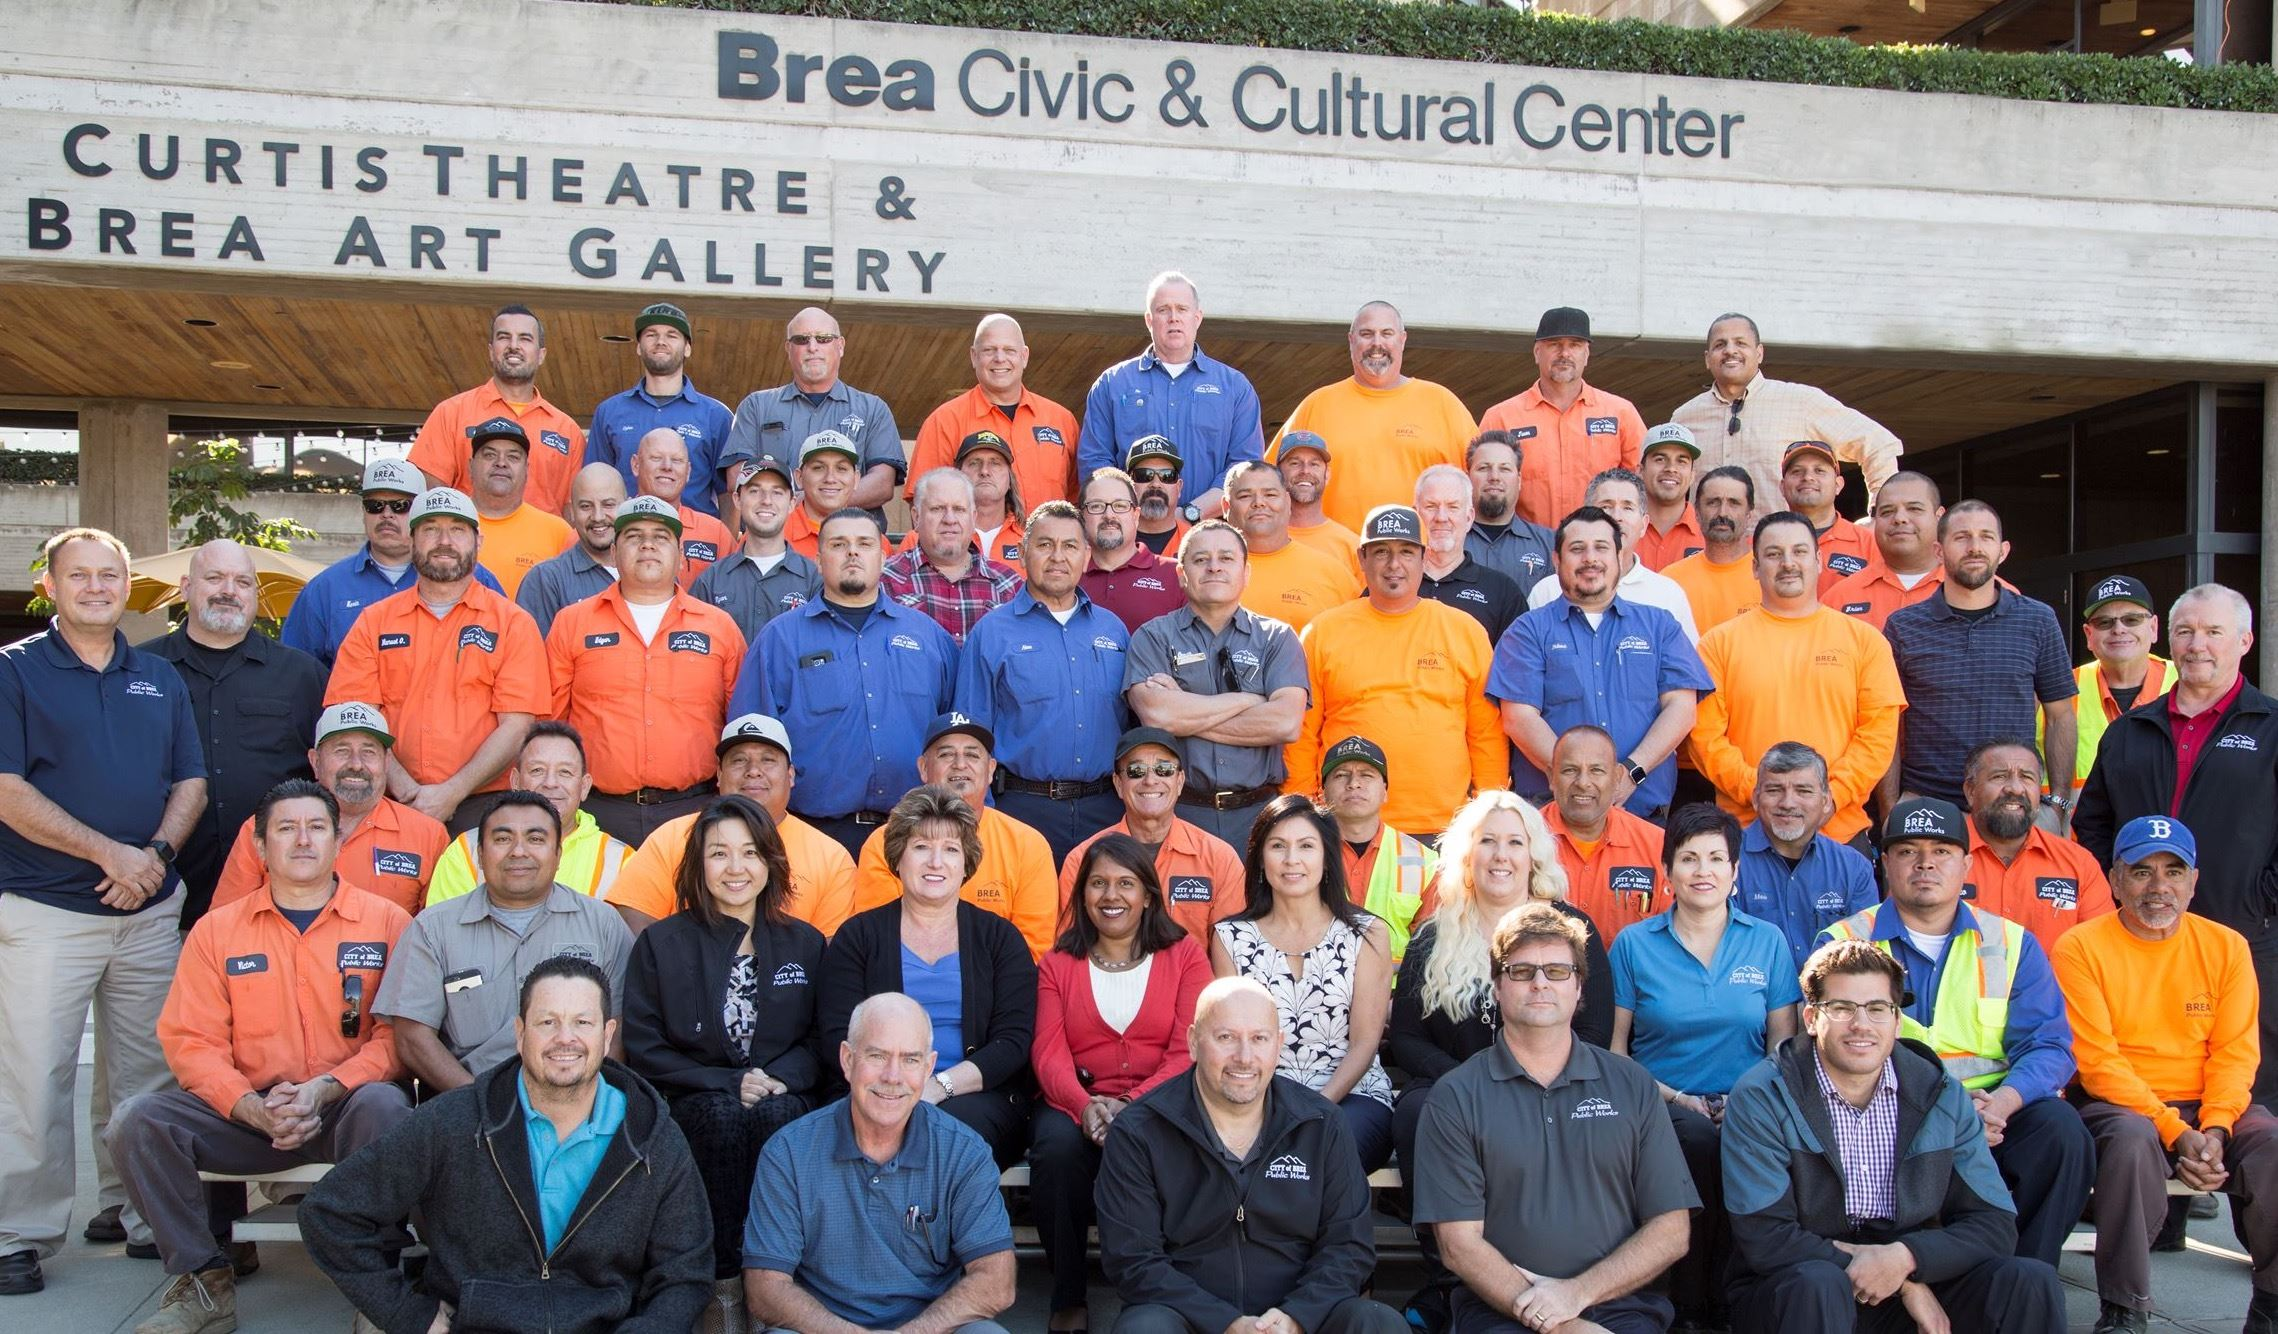 2017 Public Works Department Photo